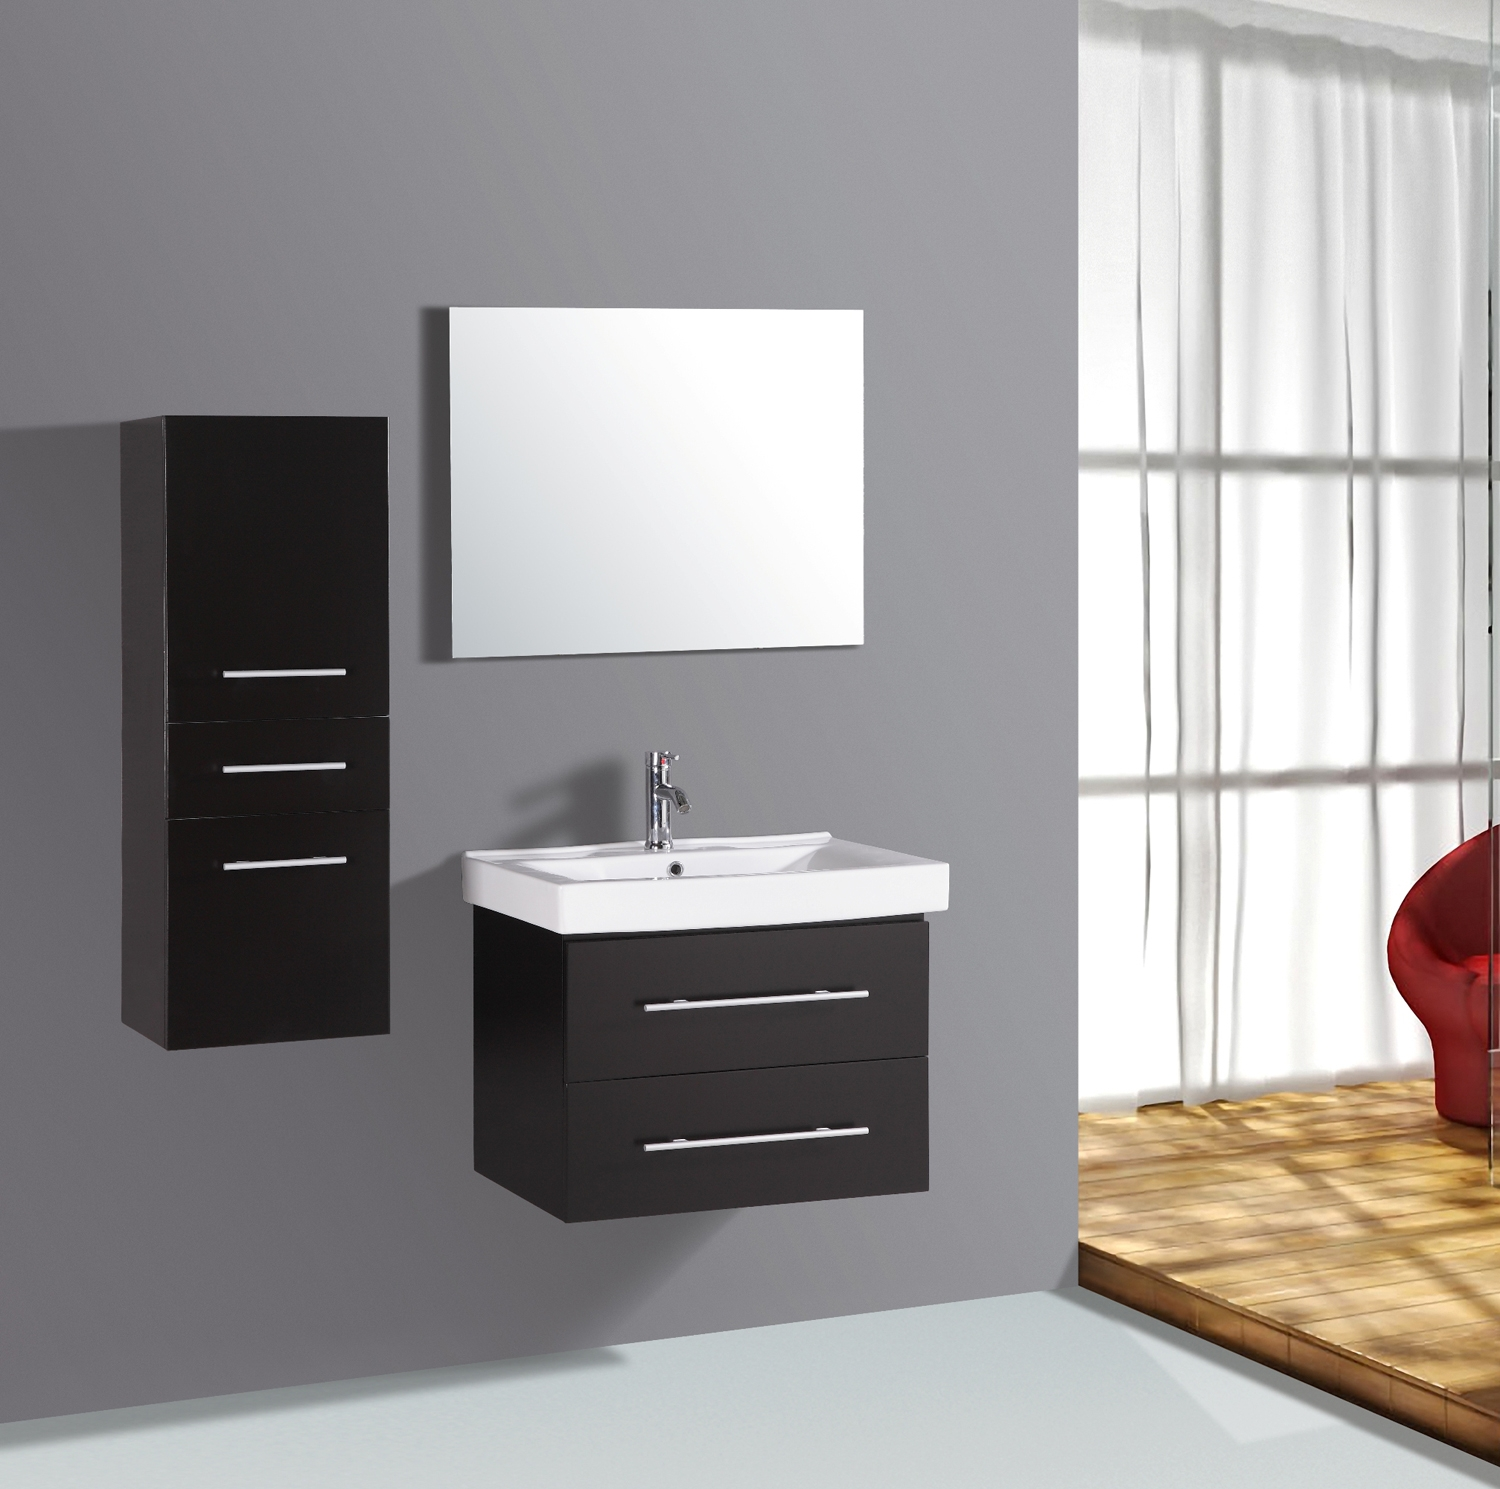 Permalink to Contemporary Bathroom Wall Mounted Cabinets